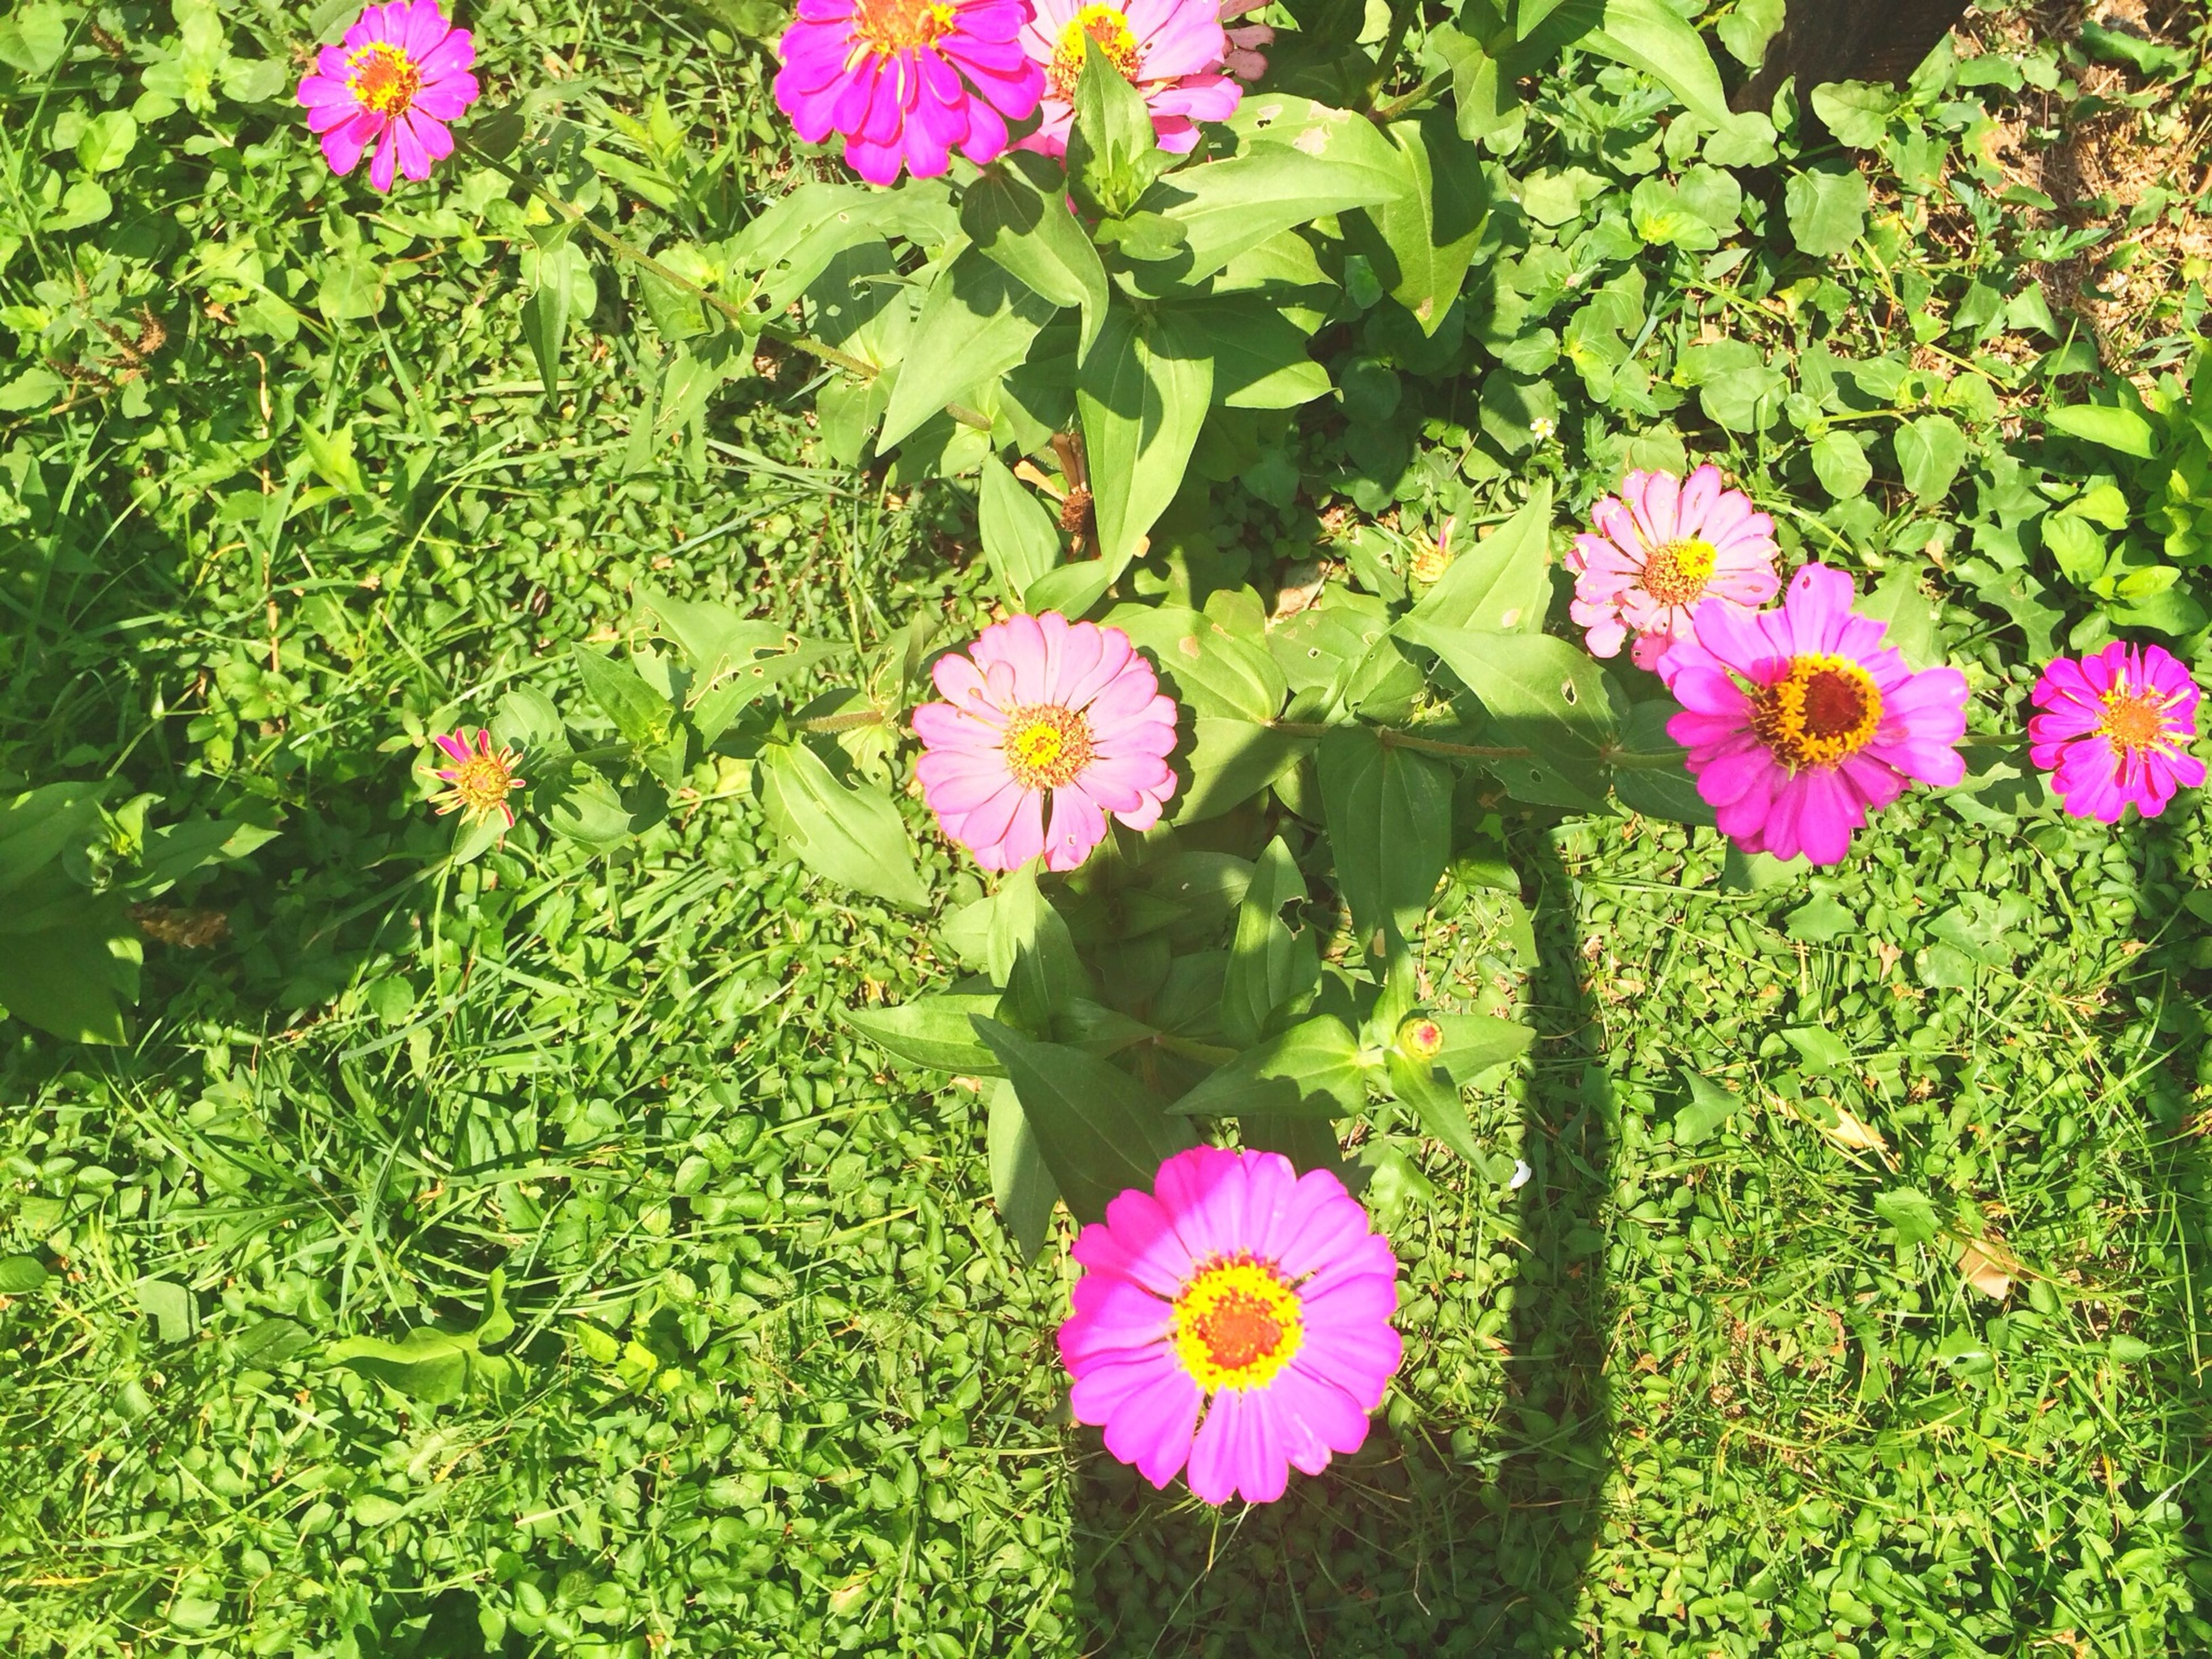 flower, freshness, growth, fragility, petal, beauty in nature, pink color, green color, leaf, plant, nature, blooming, flower head, high angle view, in bloom, purple, park - man made space, blossom, field, springtime